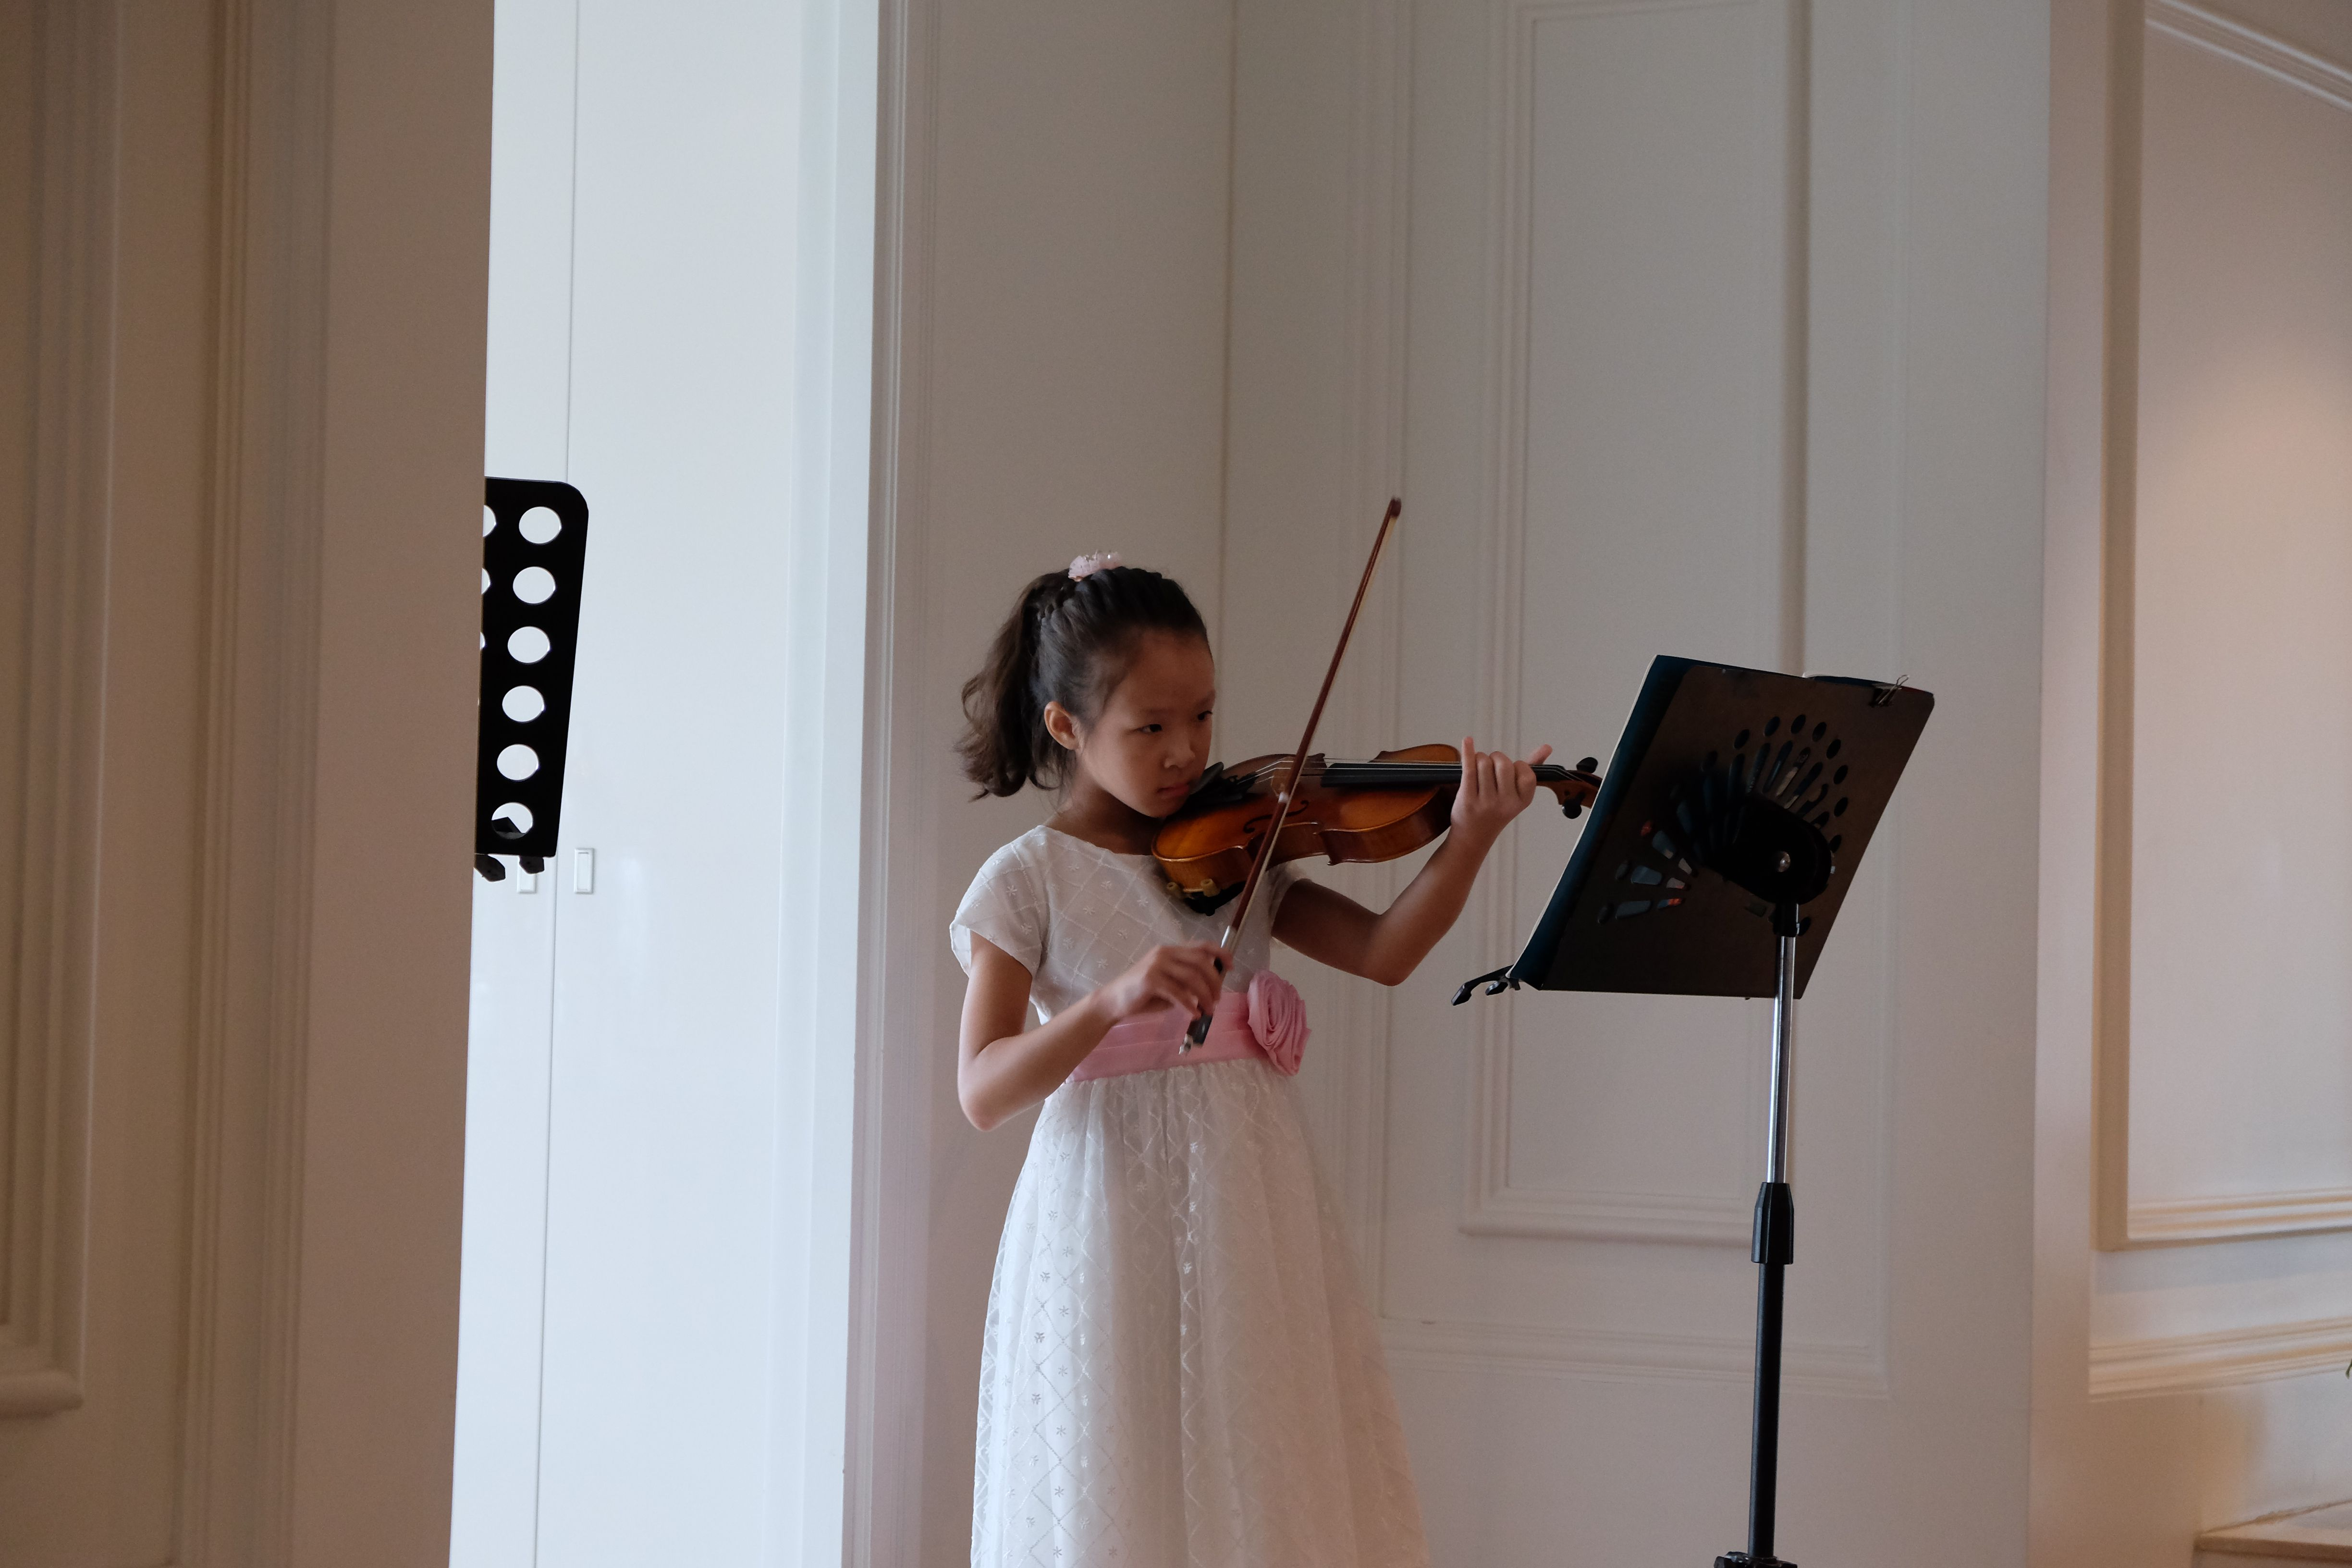 Promising young Chinese student, who has been learning the violin in Bangkok  for 10 months.